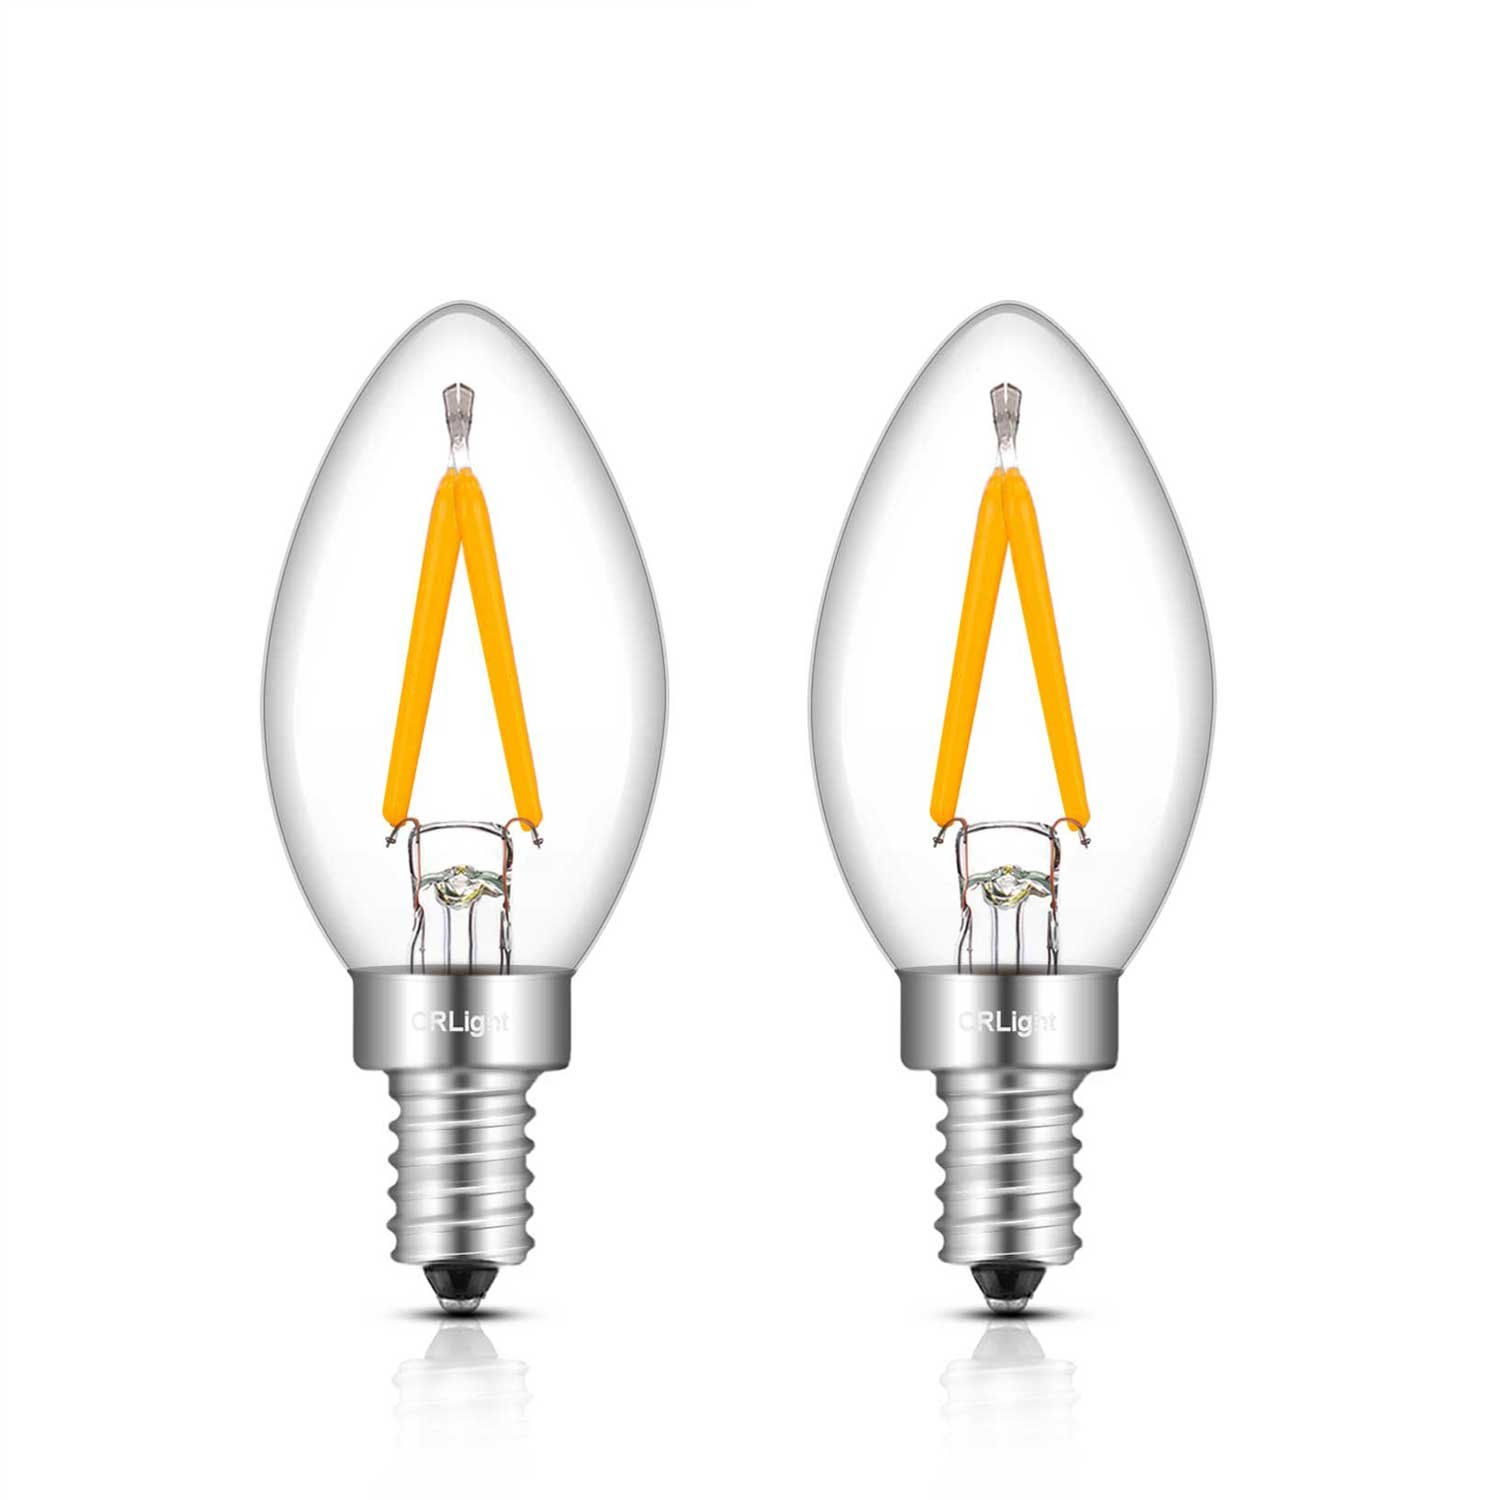 CRLight 1W 150LM LED Candelabra C7 Night Light Bulbs, 2700K Warm White 15W Incandescent Replacement, E12 Base C7 Mini Candle Torpedo Shape, 360 Degrees Beam Angle, Non-dimmable, 2 Pack